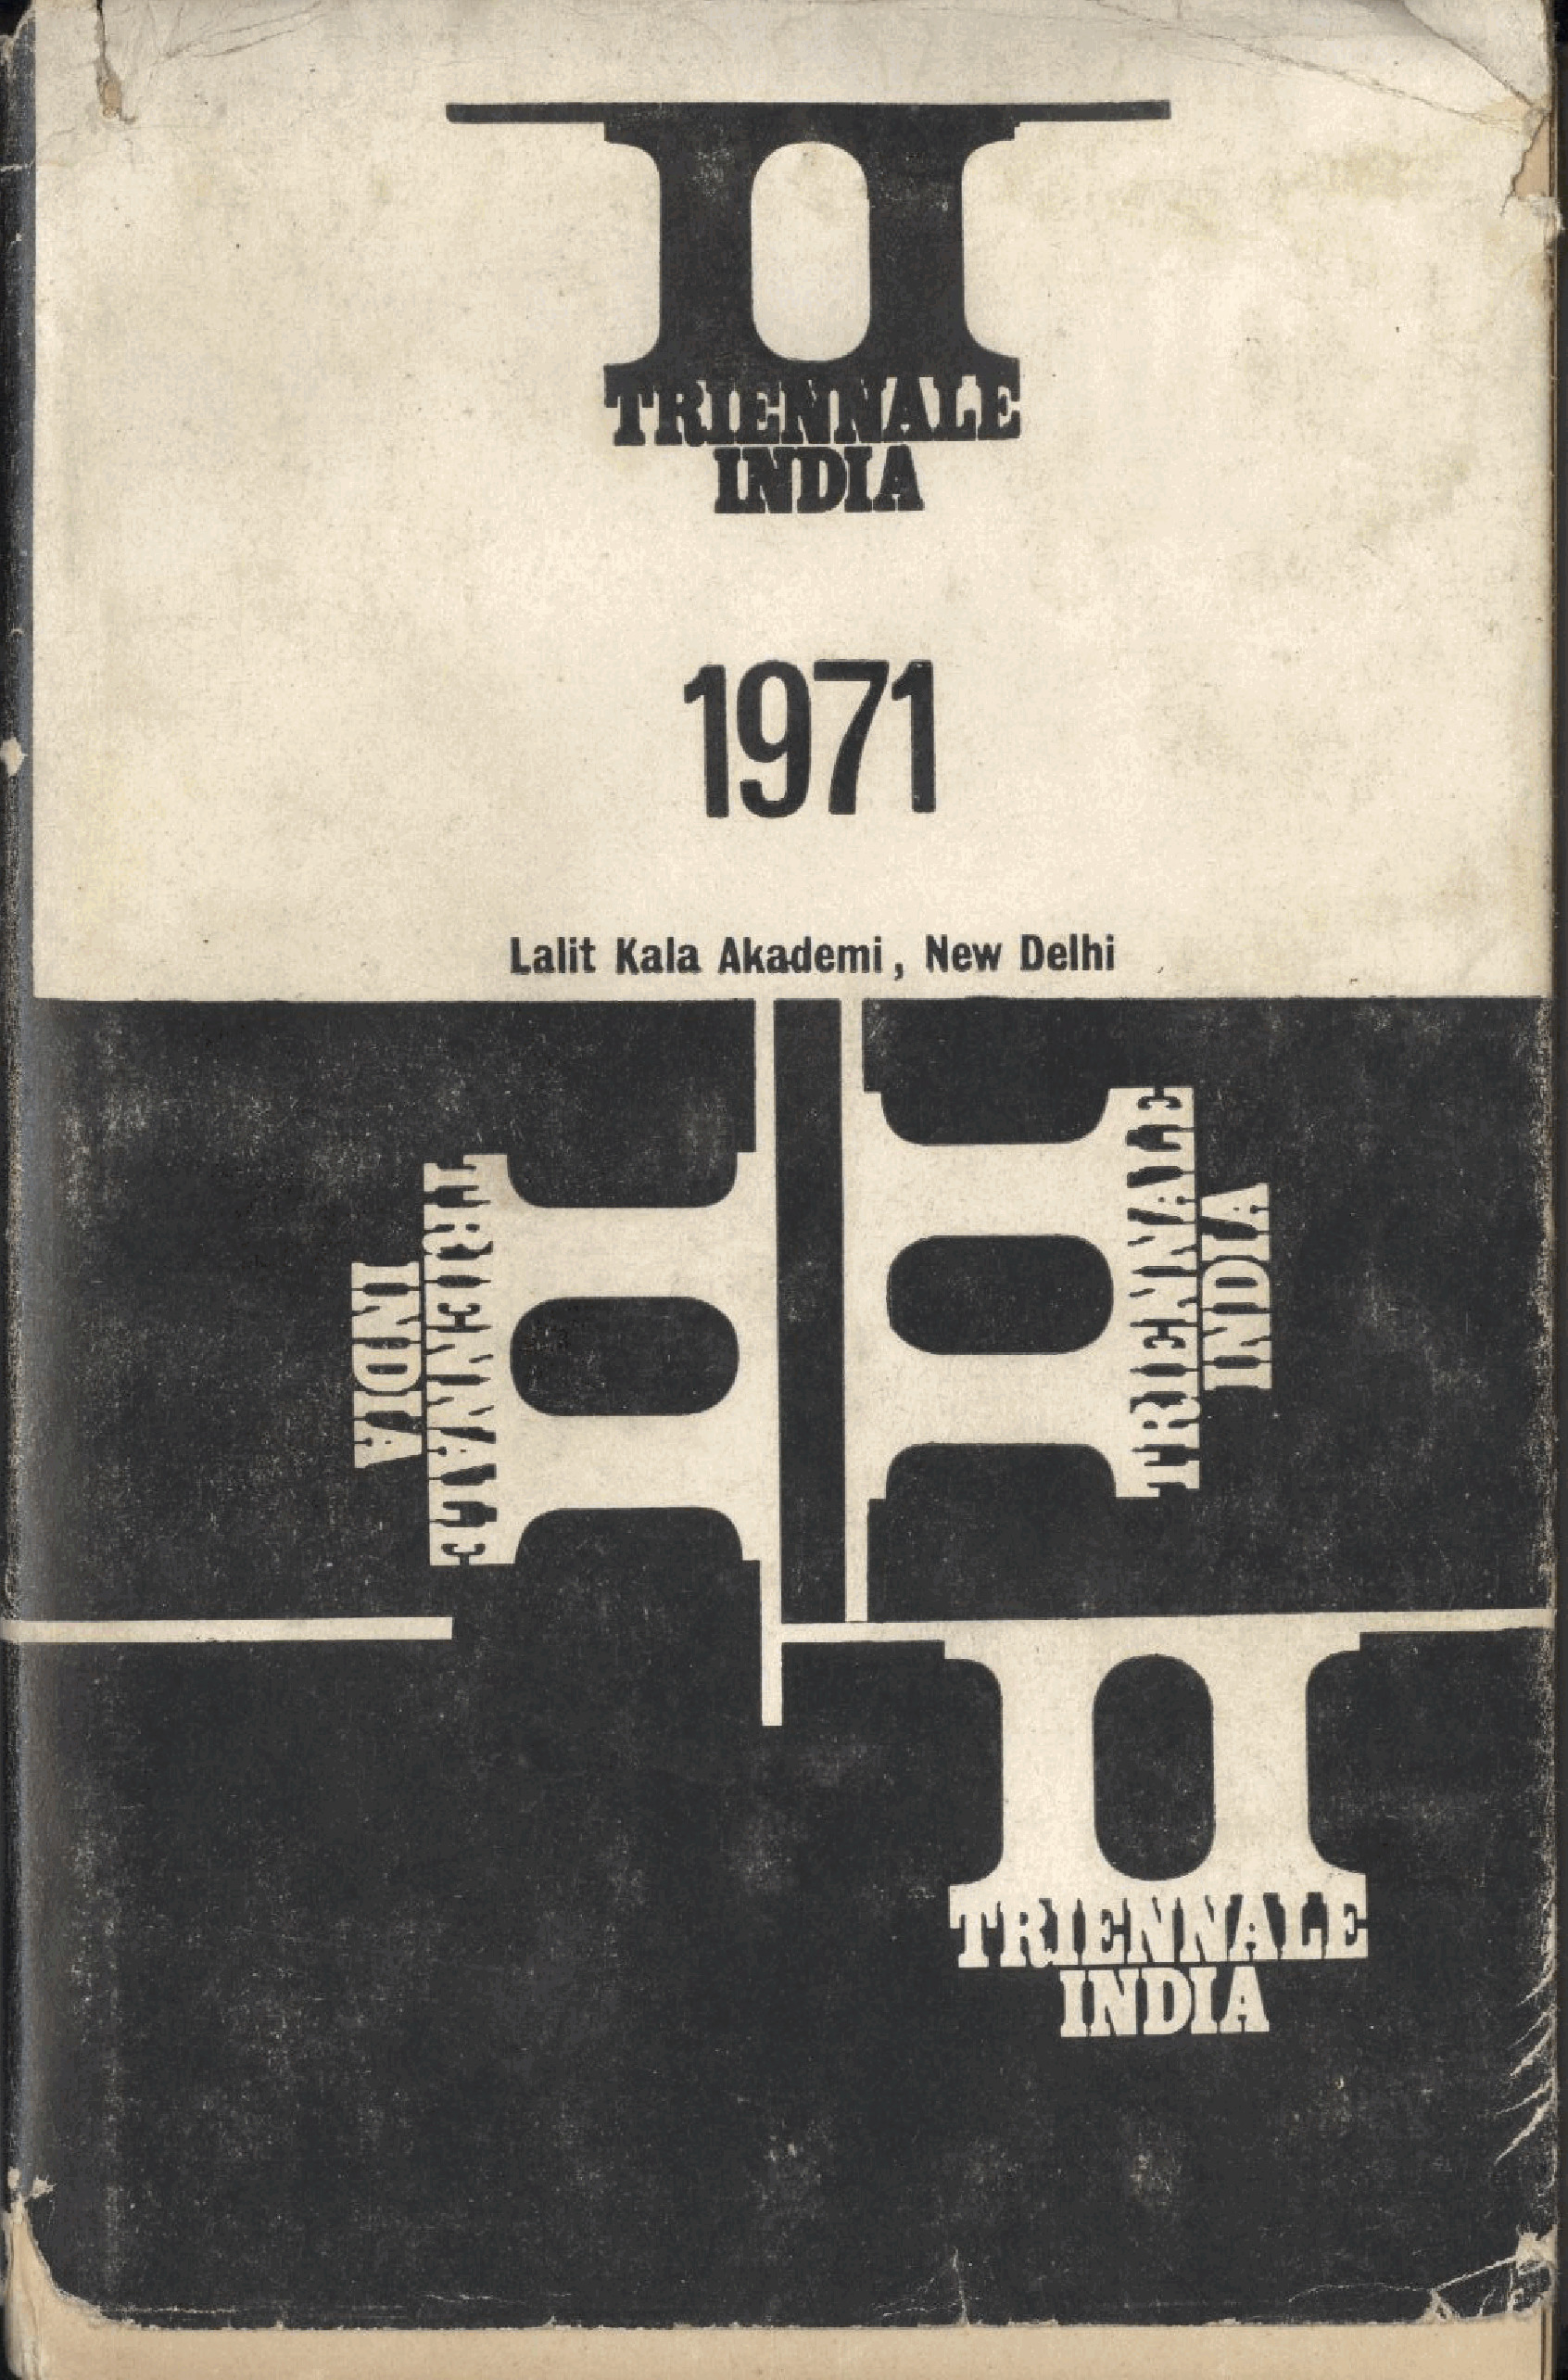 Collection   Search   Second Triennale-India 1971   Asia Art